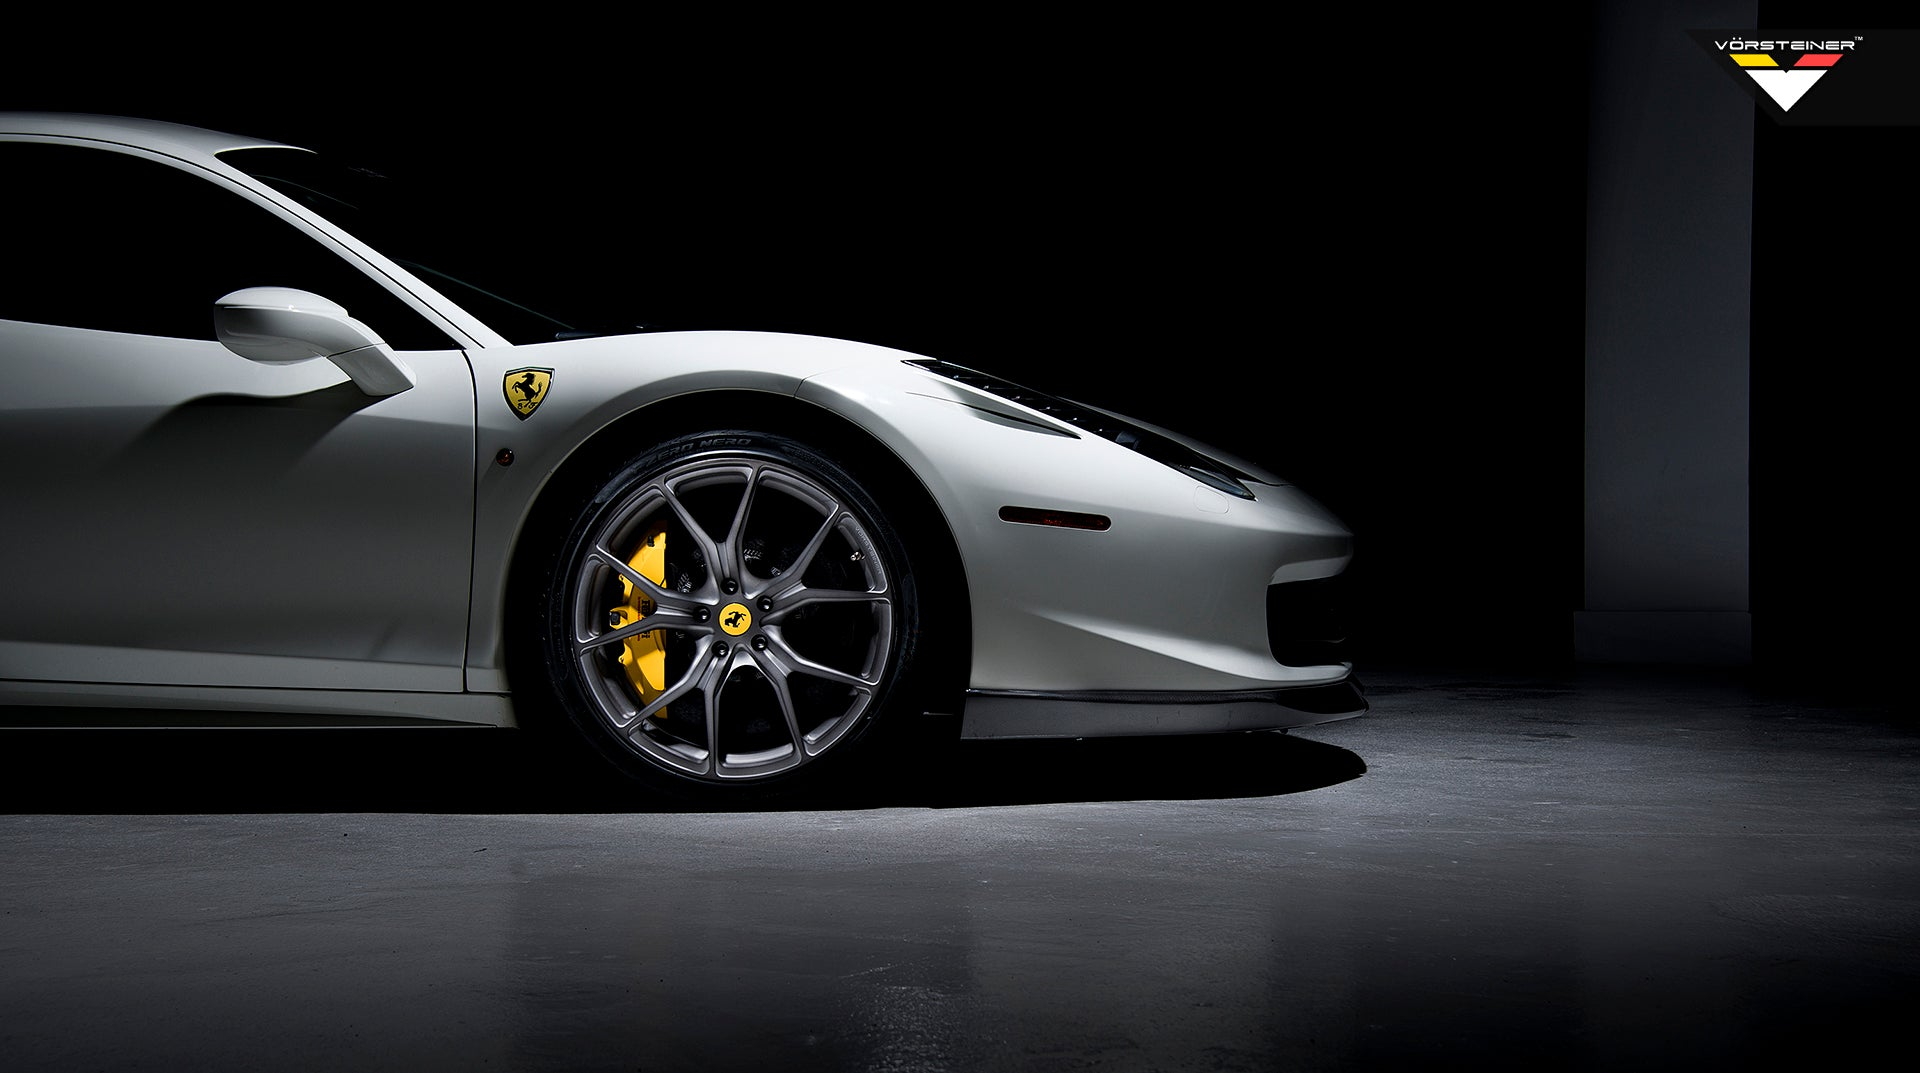 FERRARI 458 ITALIA V AERO FOG LIGHT SURROUNDS